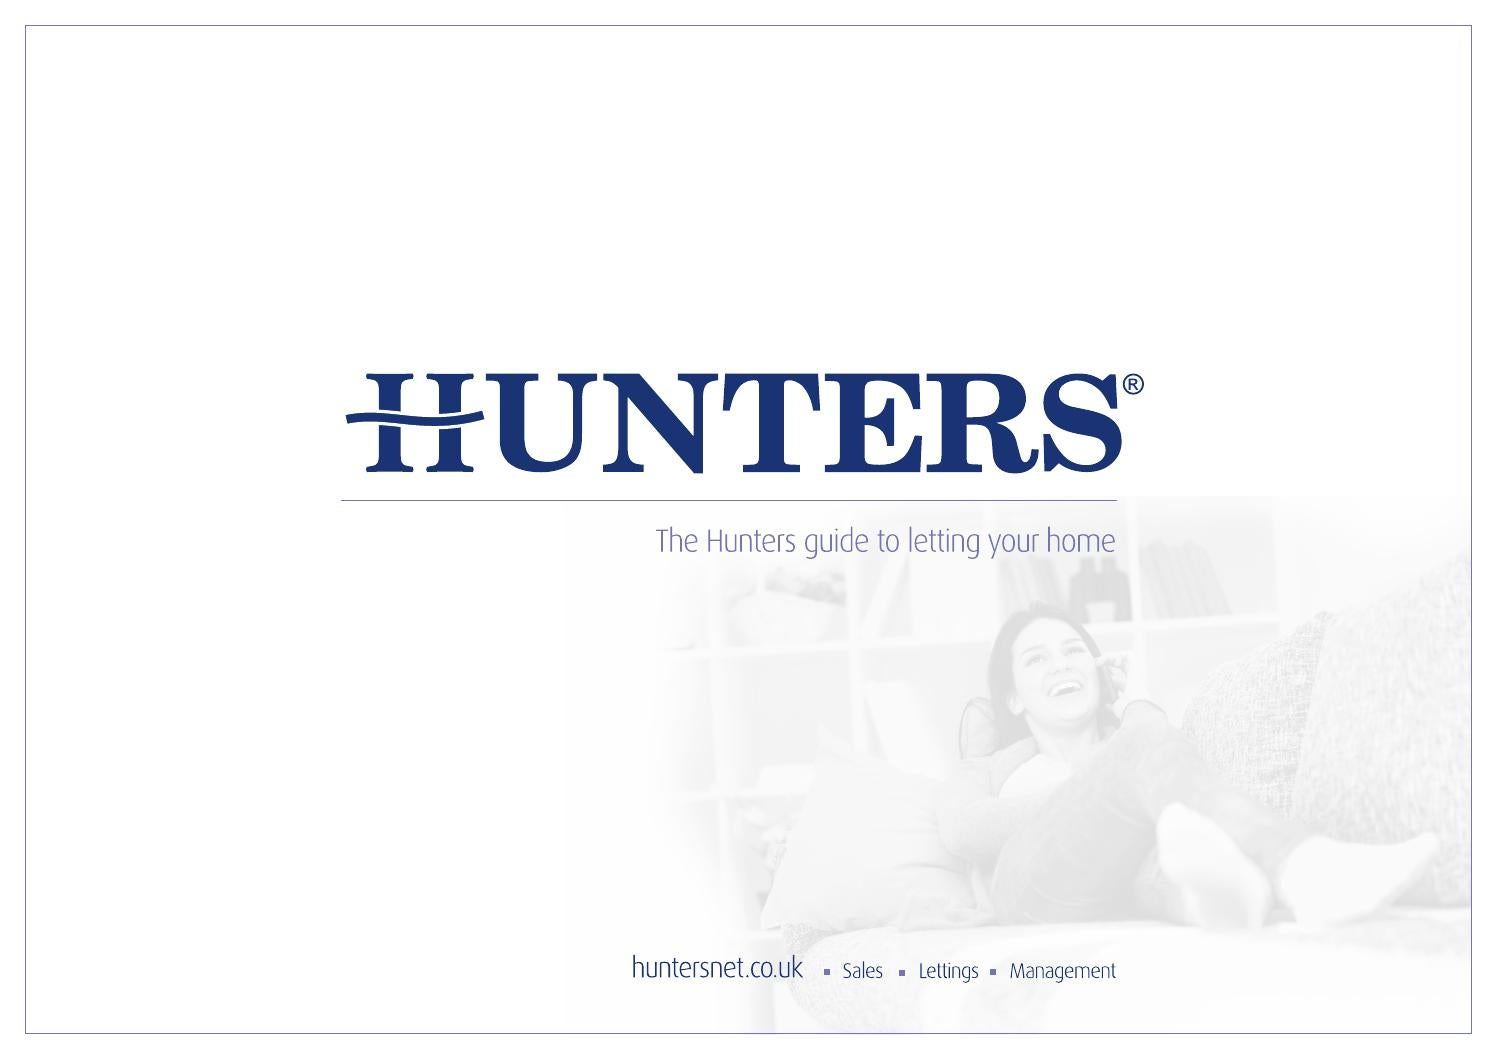 Hunters lettings brochure by Hunters Property Group Ltd